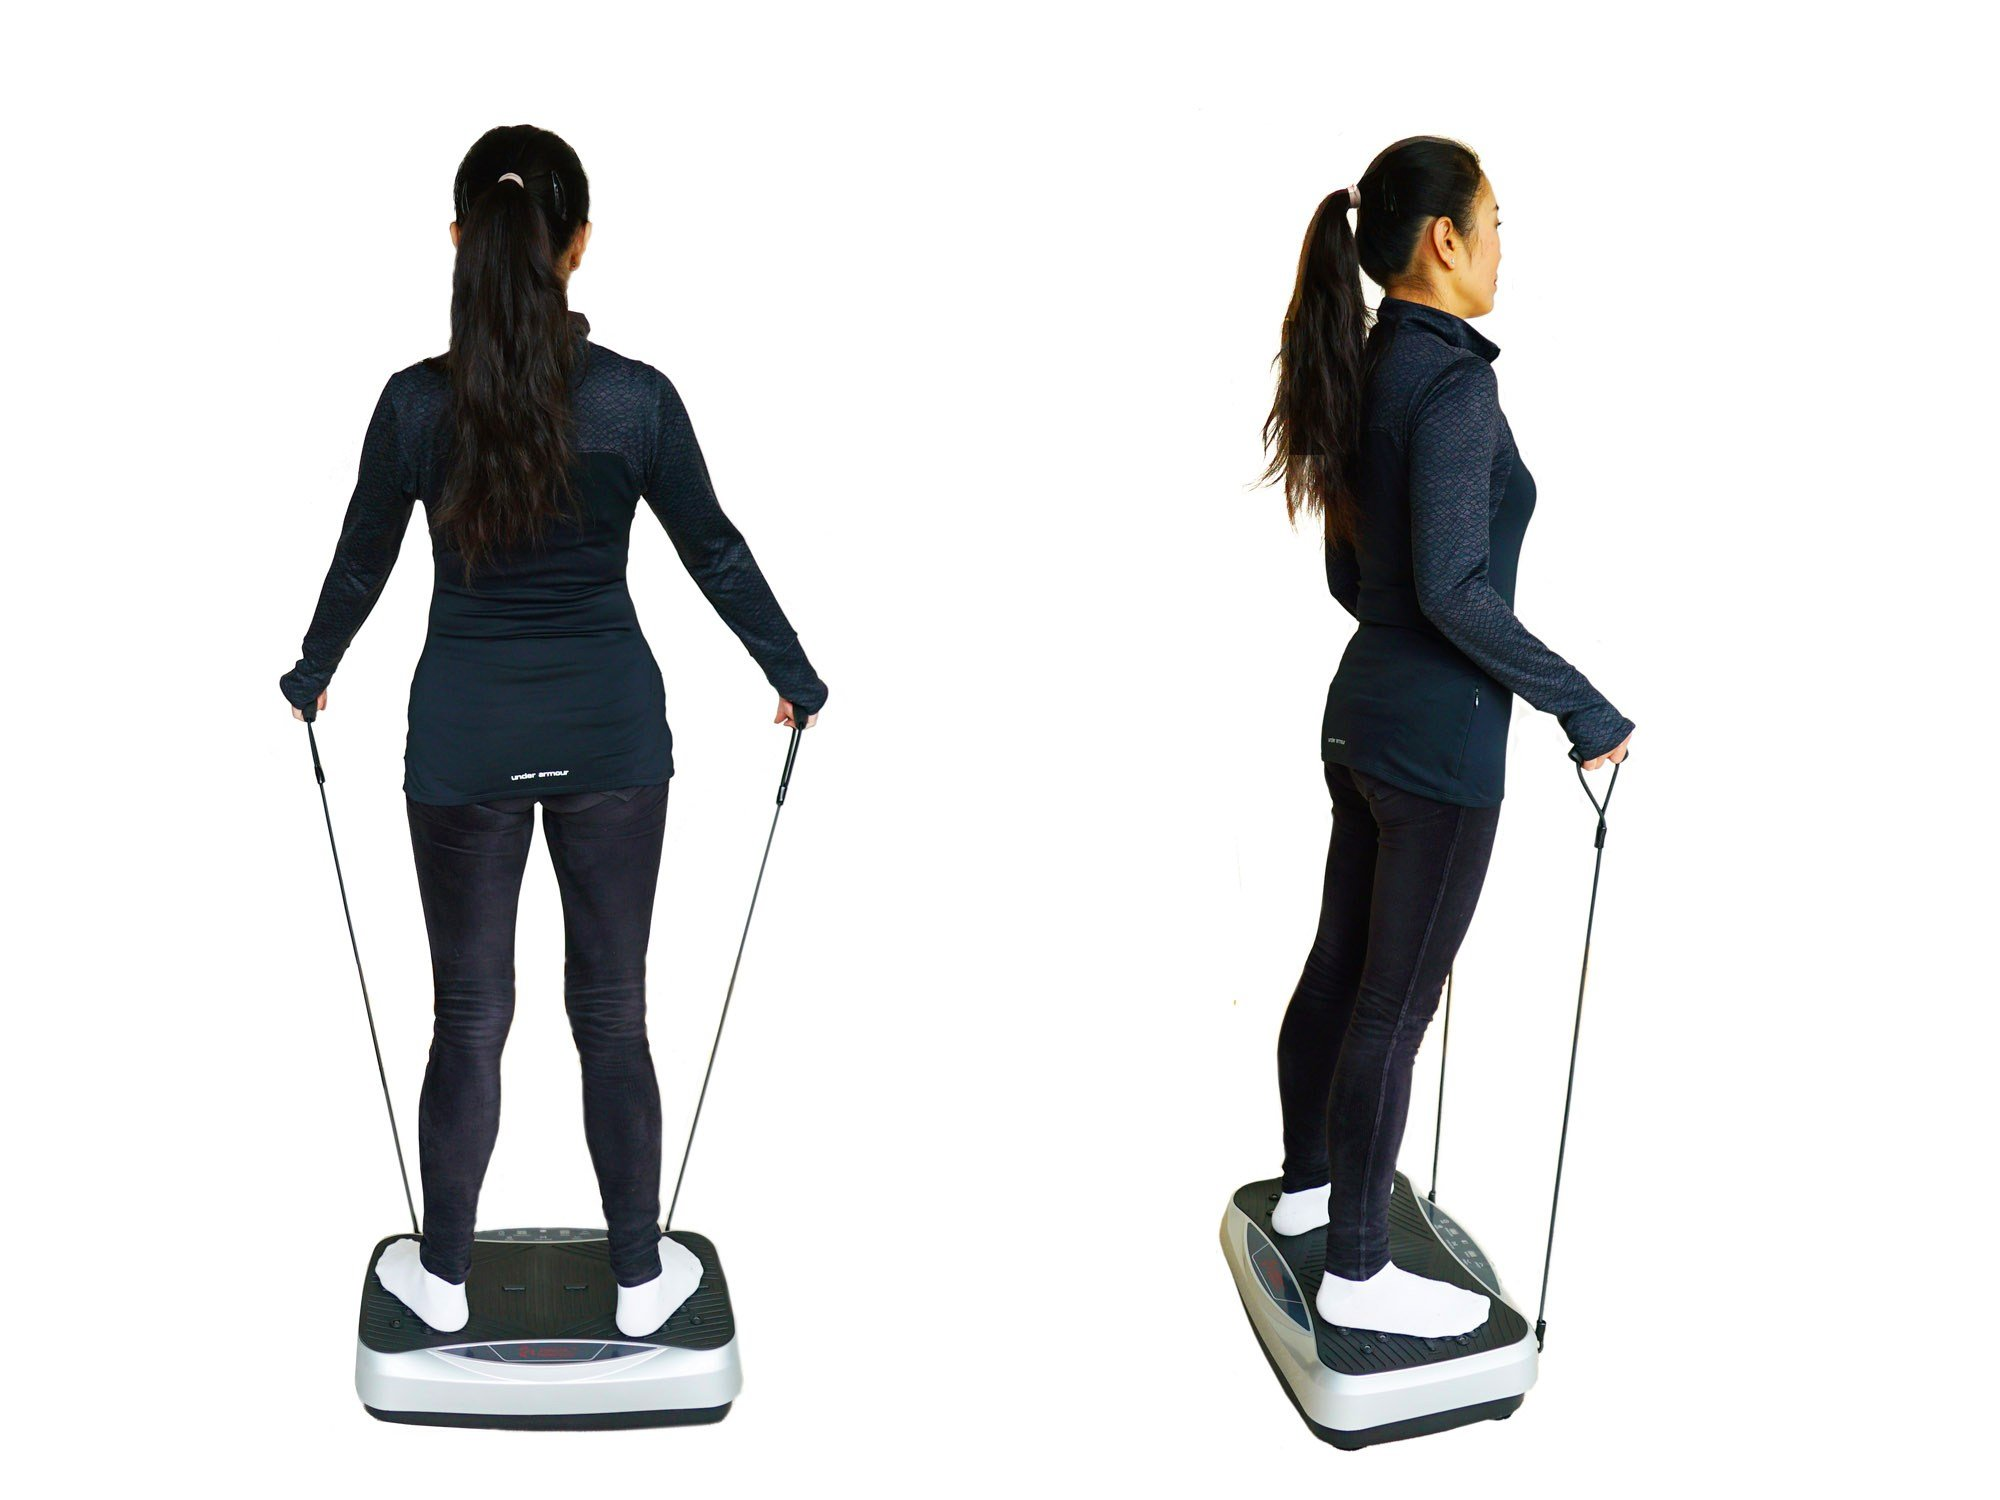 VT Full Body Vibration Platform Fitness Machine - Pivotal Oscillation - Compact Size - Quiet - Timer - 60 Speed Level, VT017 by VT VIBRATION THERAPEUTIC (Image #5)